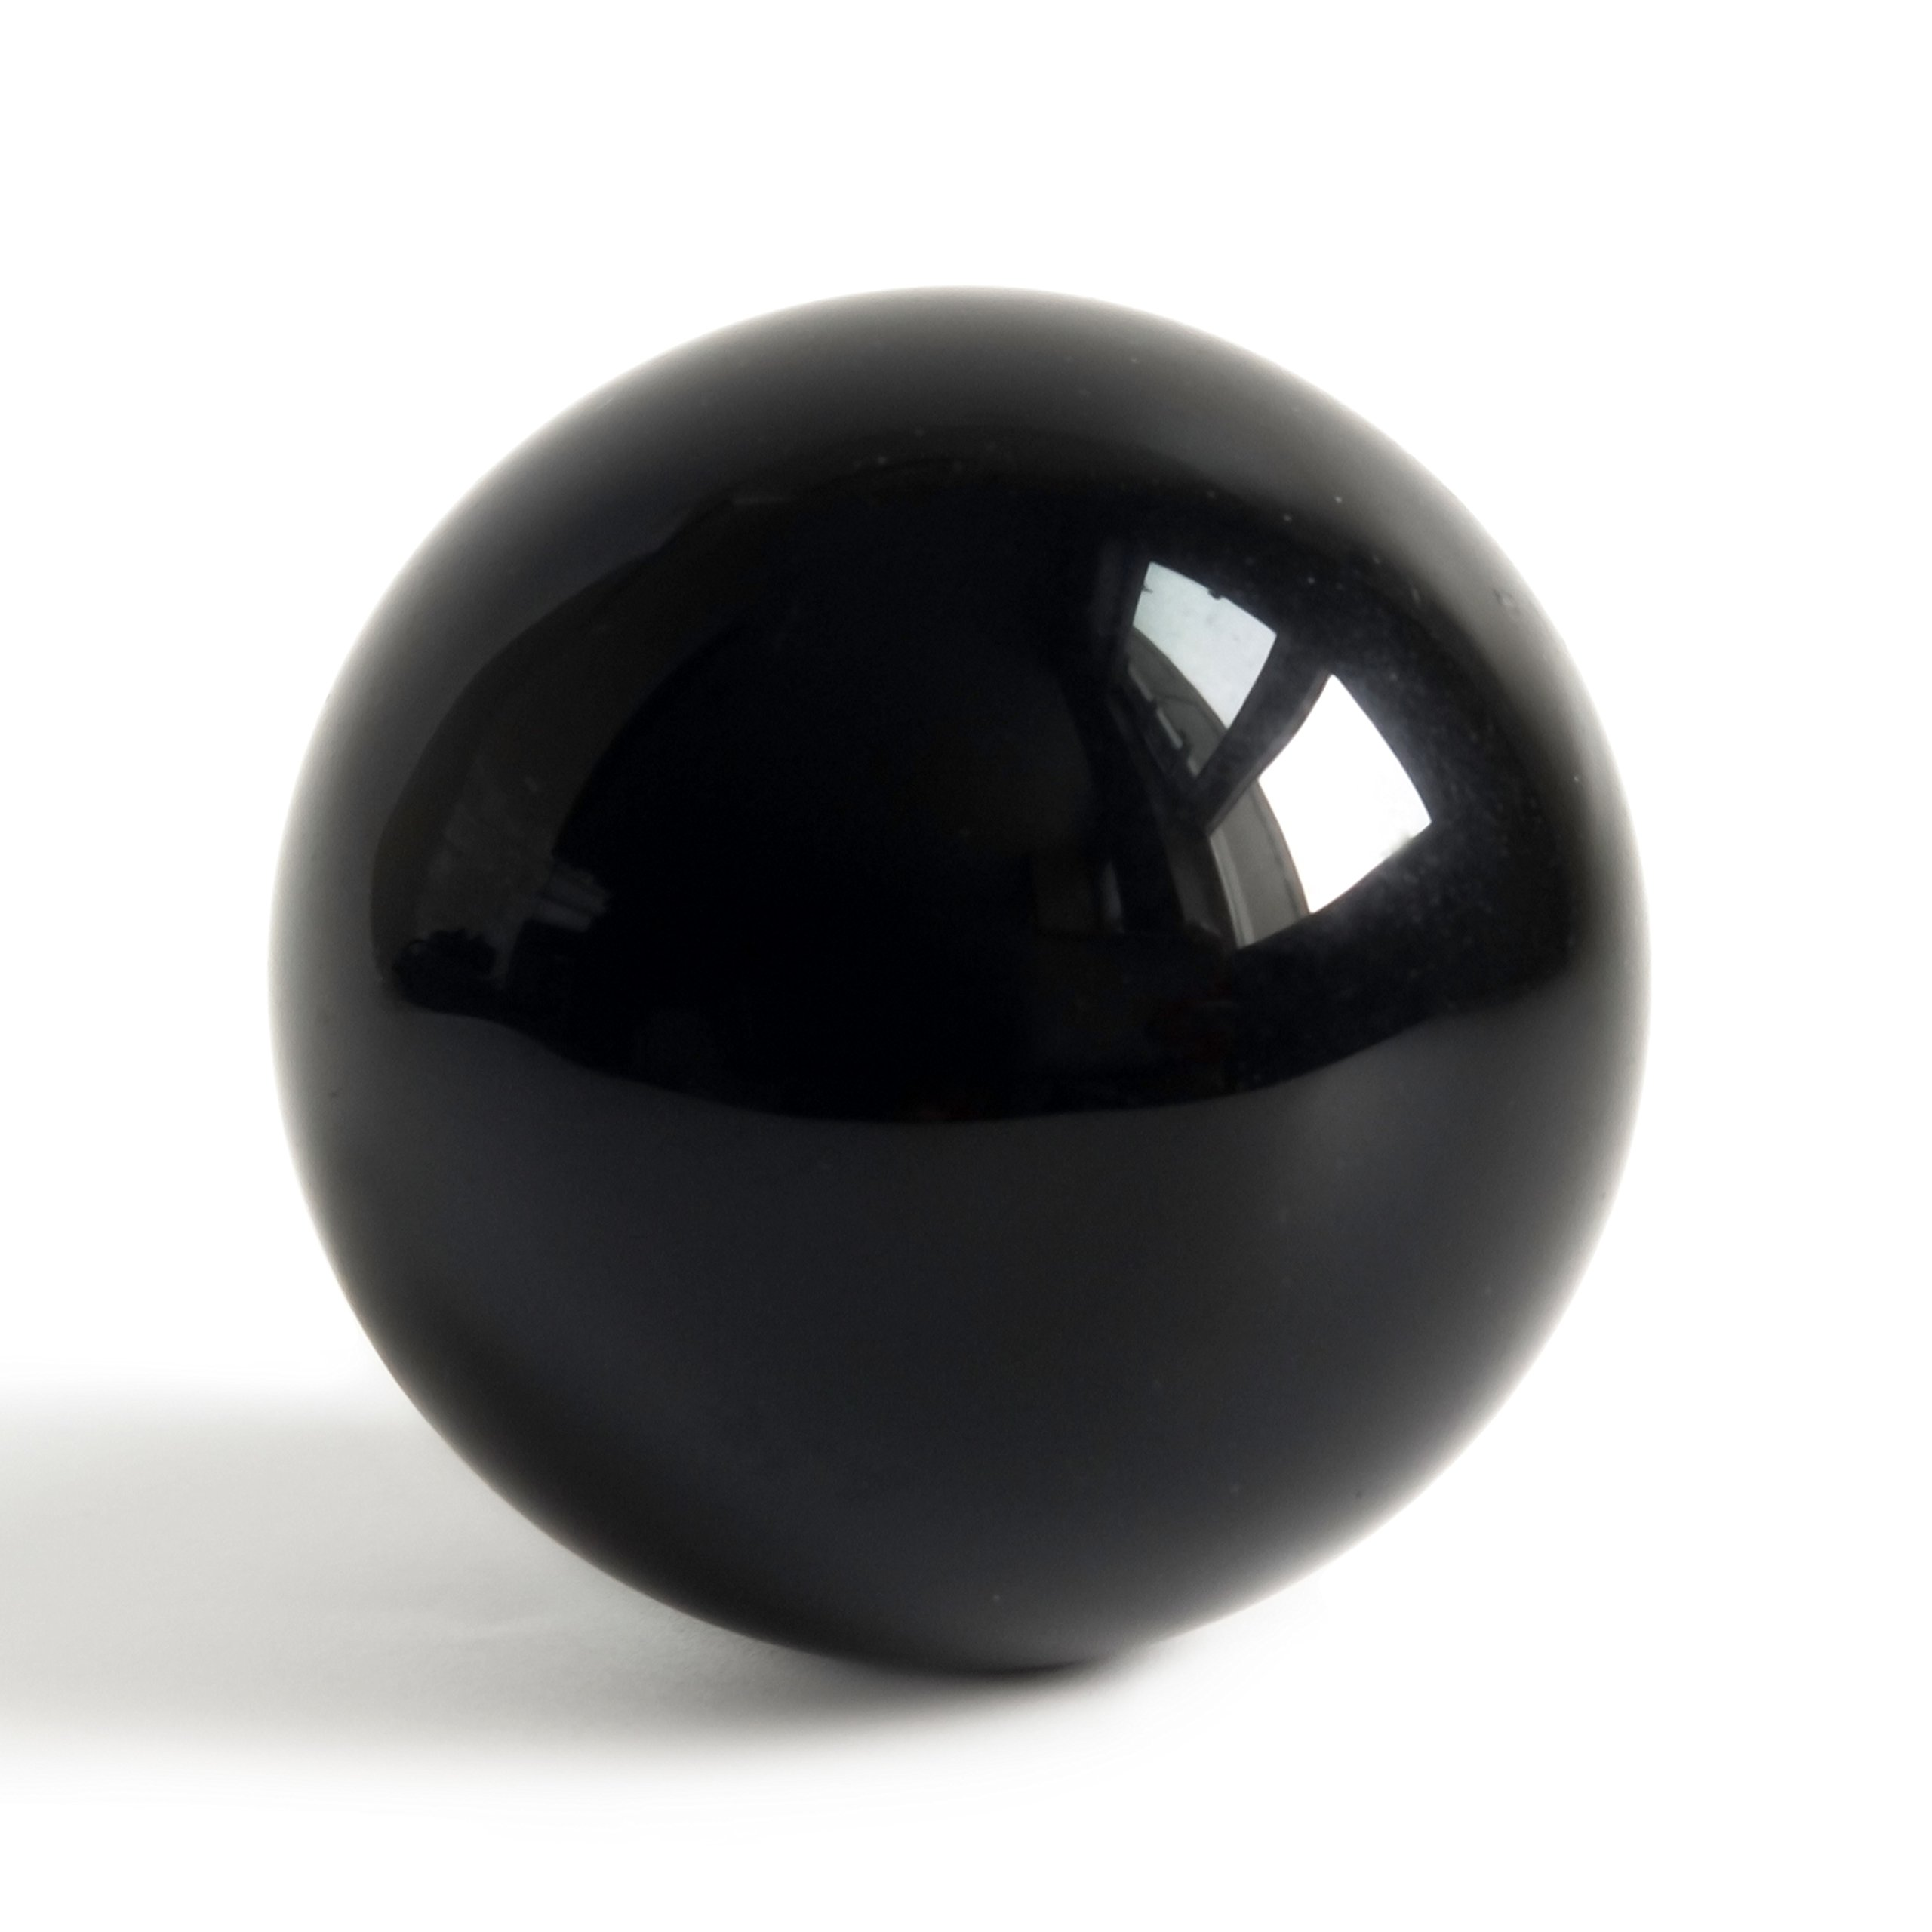 Mina Heal Obsidian Crystal Ball 160 mm/6.3'' for Fengshui Ball, Scrying, Meditation, Crystal Healing, Divination Sphere, Home Decoration, 100% Natural and Genuine by Mina Heal (Image #3)